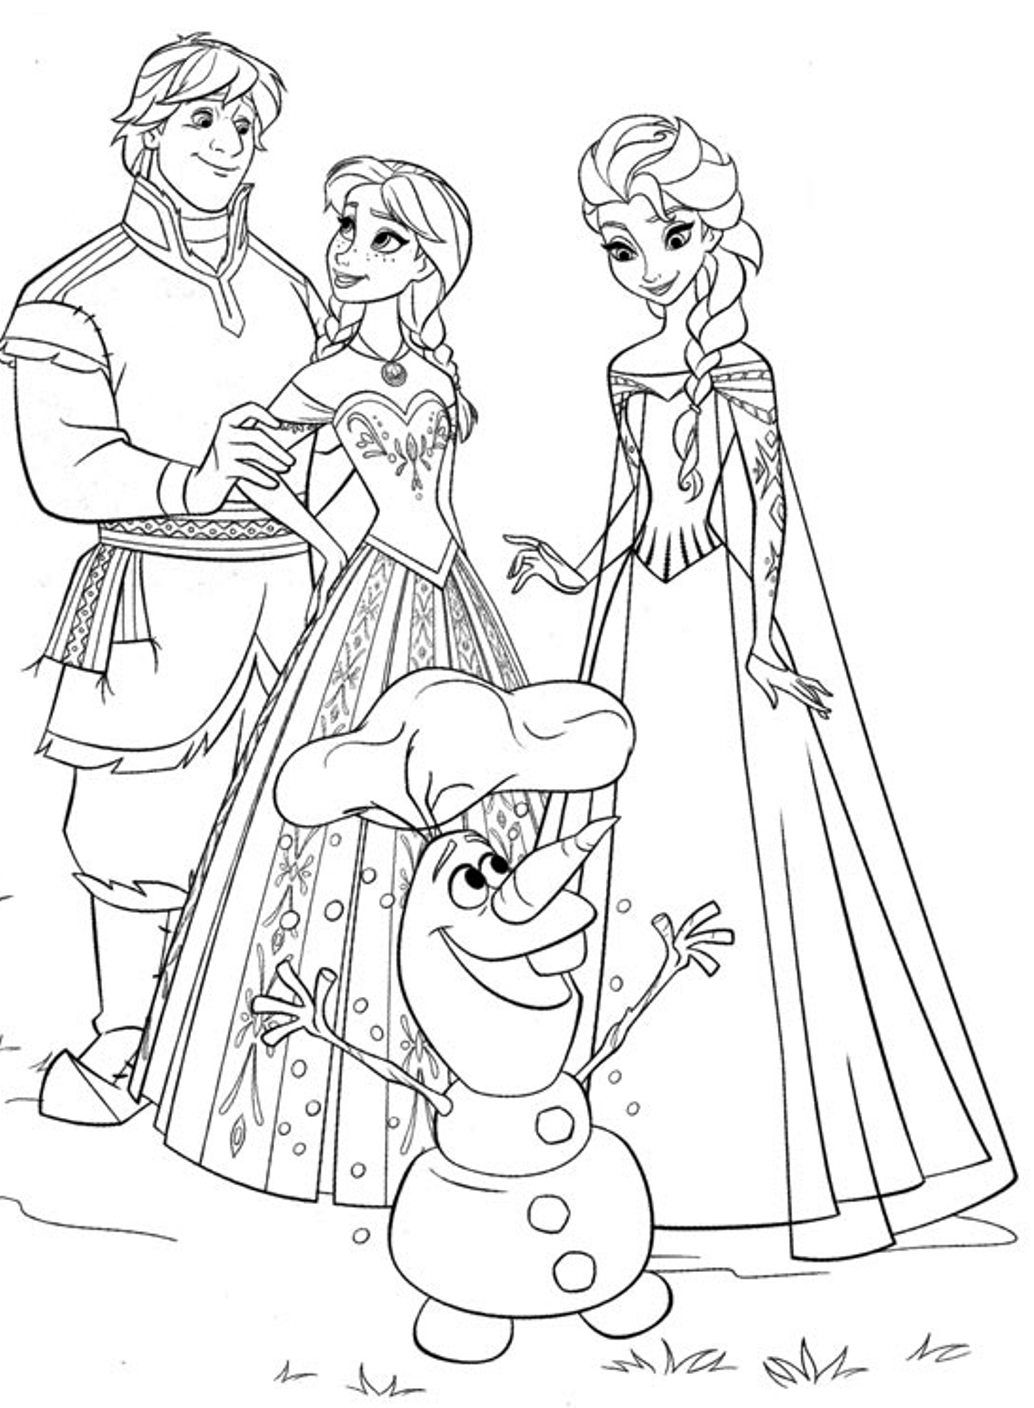 Frozen Olaf Coloring Pages Books 100 Free And